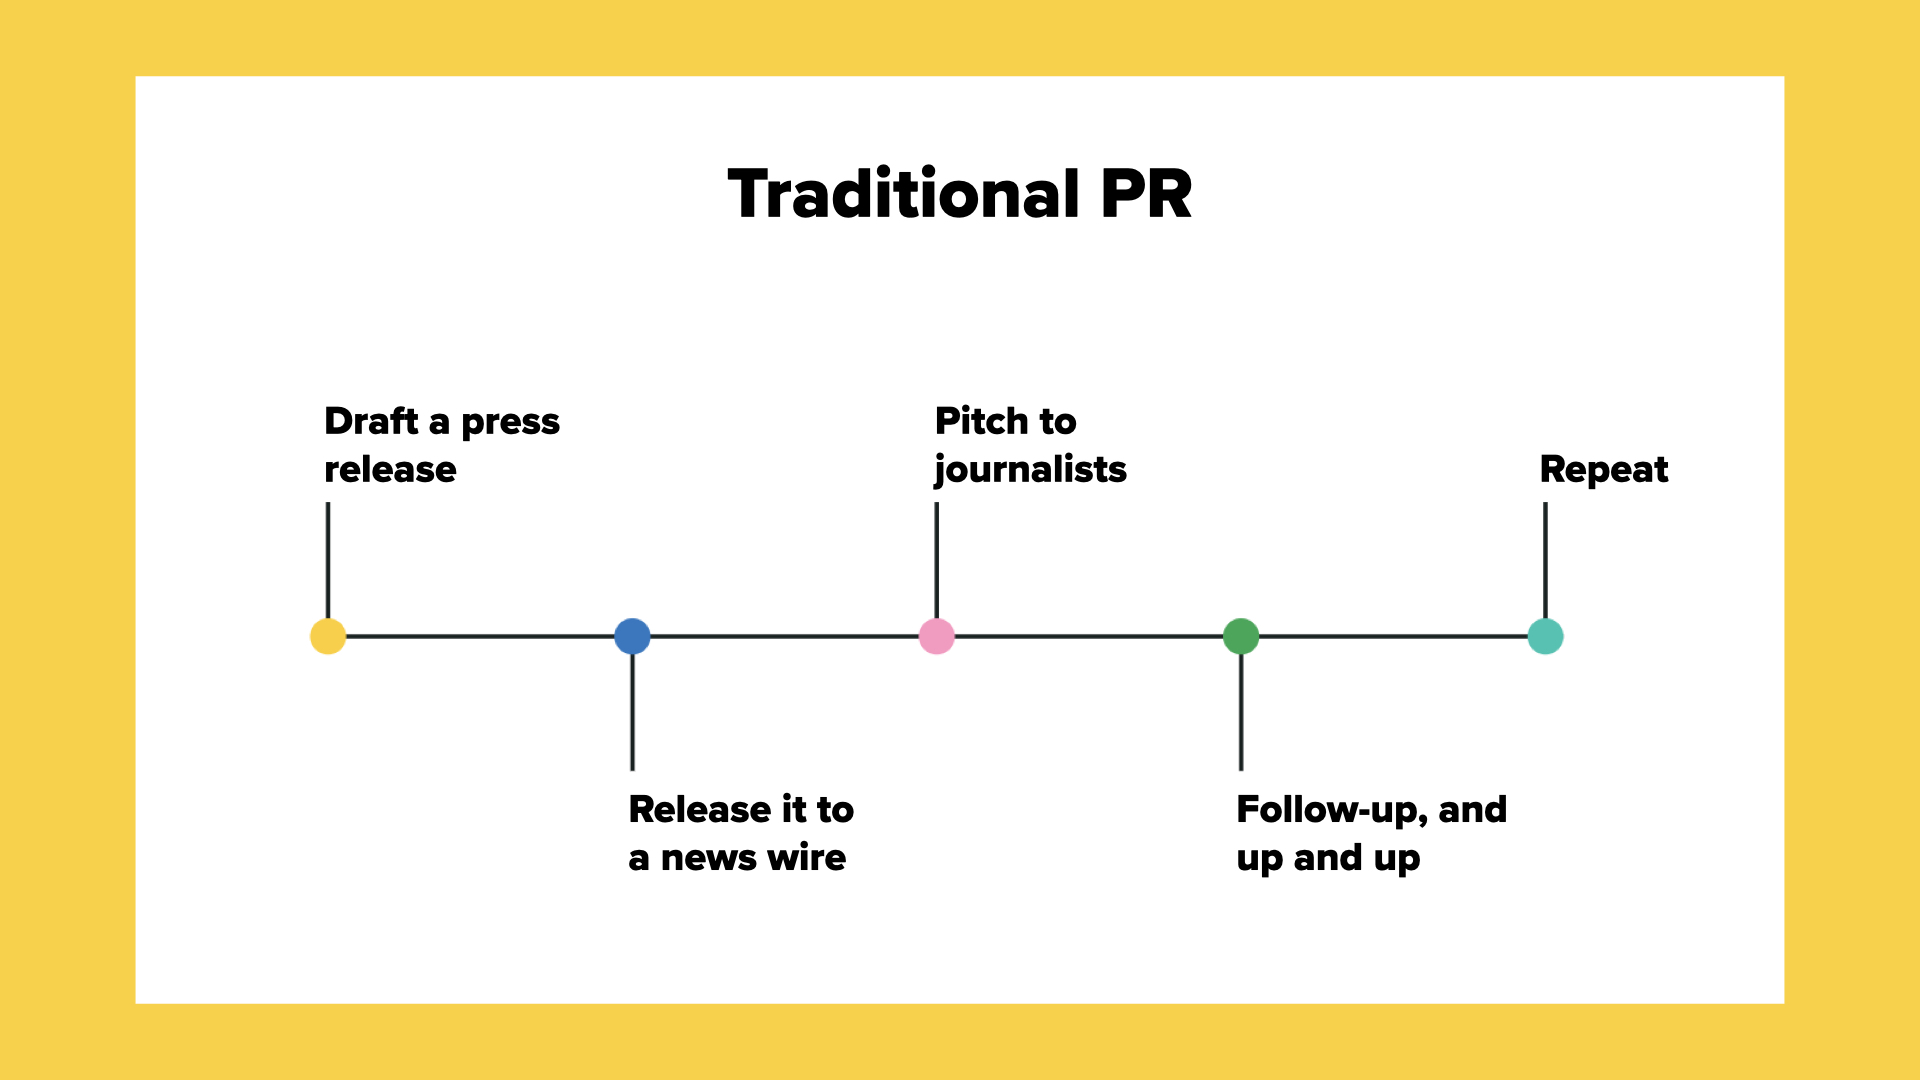 Traditional PR Strategy timeline: Draft a press release, release it to a news wire, pitch to journalists, follow-up and up and up, repeat